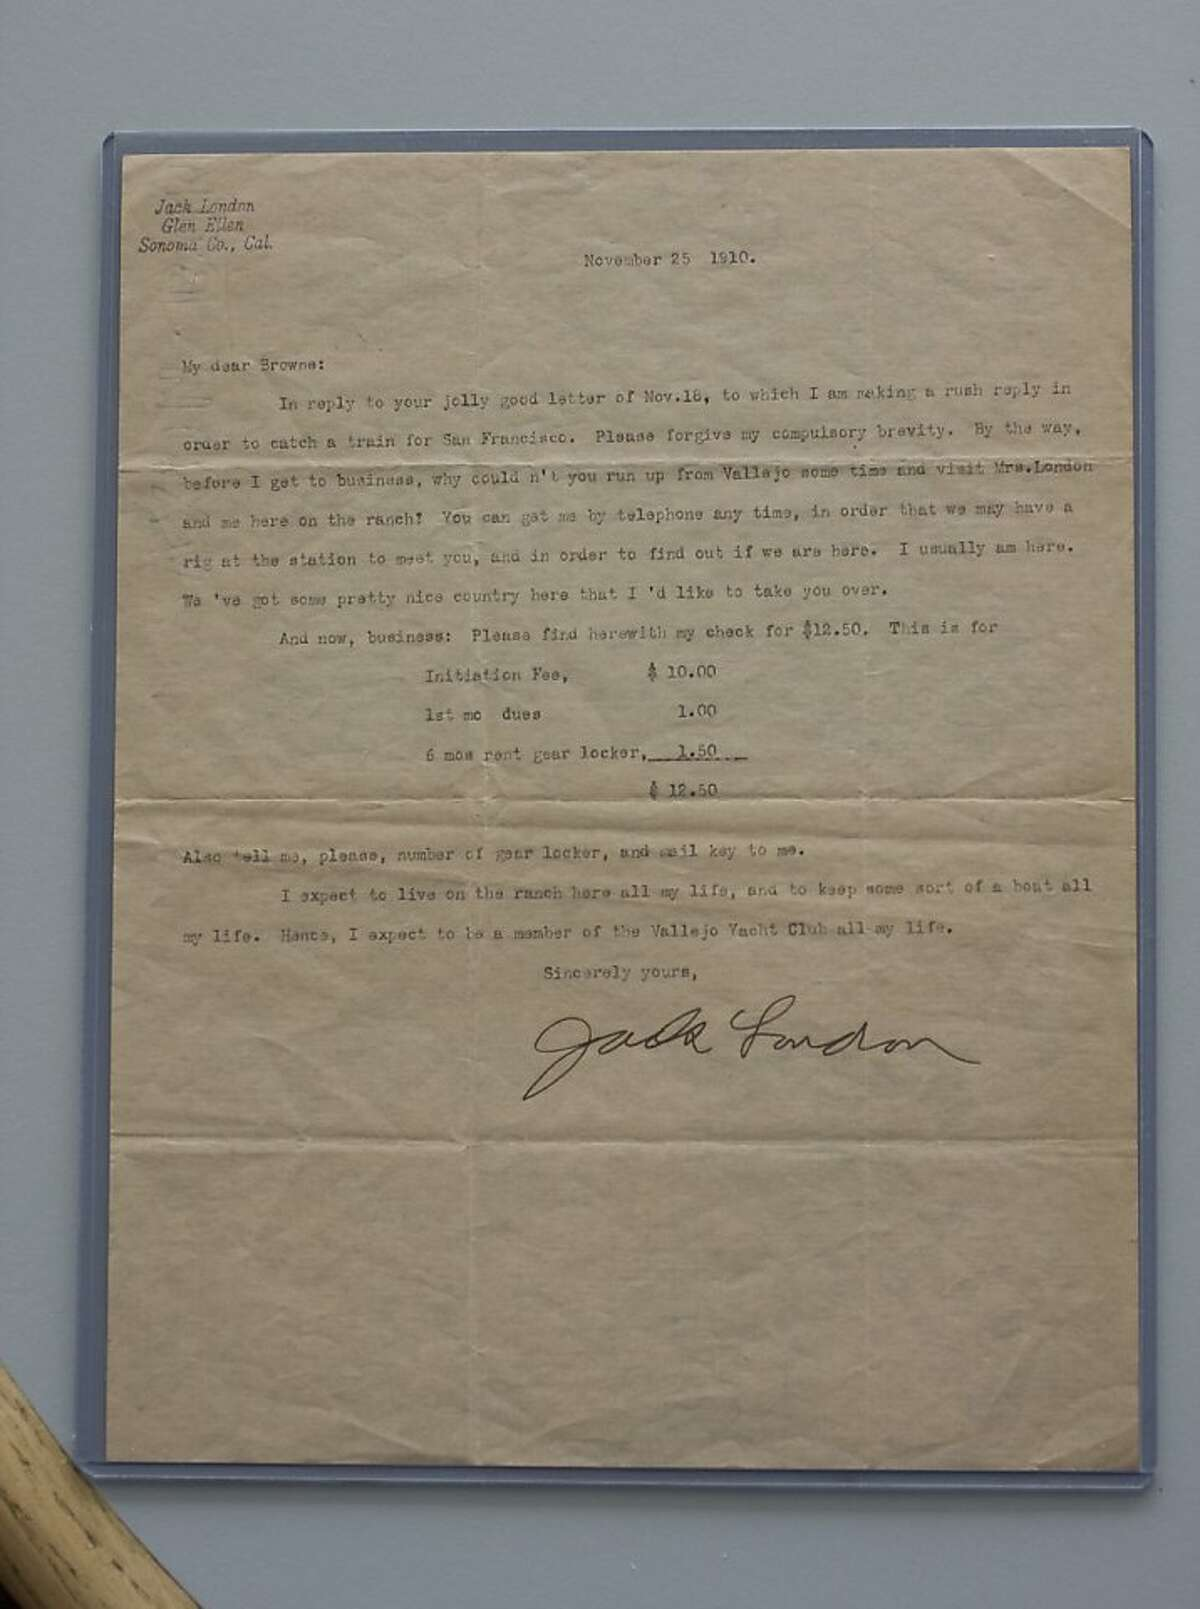 Jack London submitted an application the Vallejo Yacht Club in 1910.